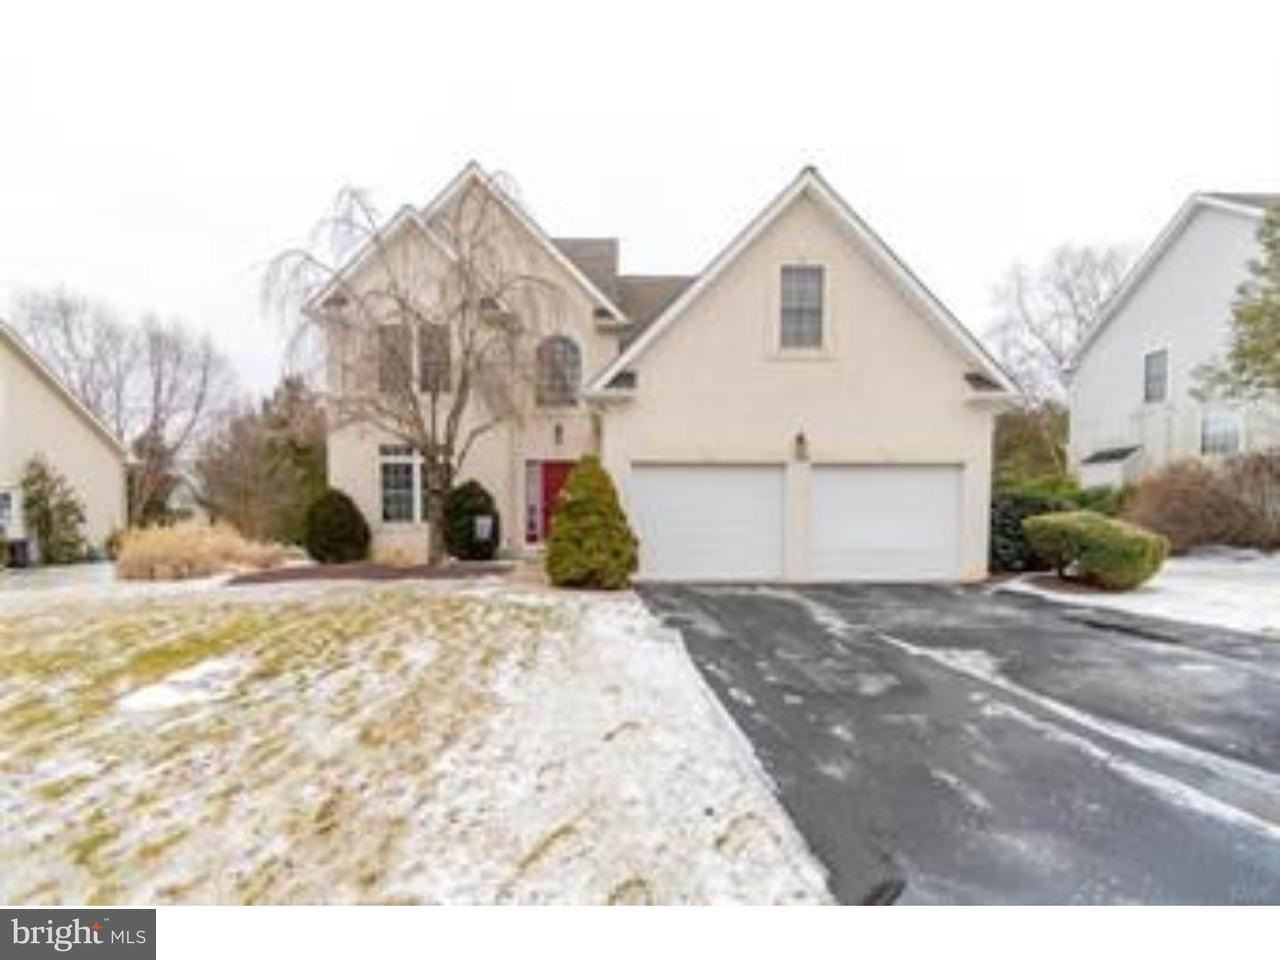 3295  Watermill Macungie, PA 18062